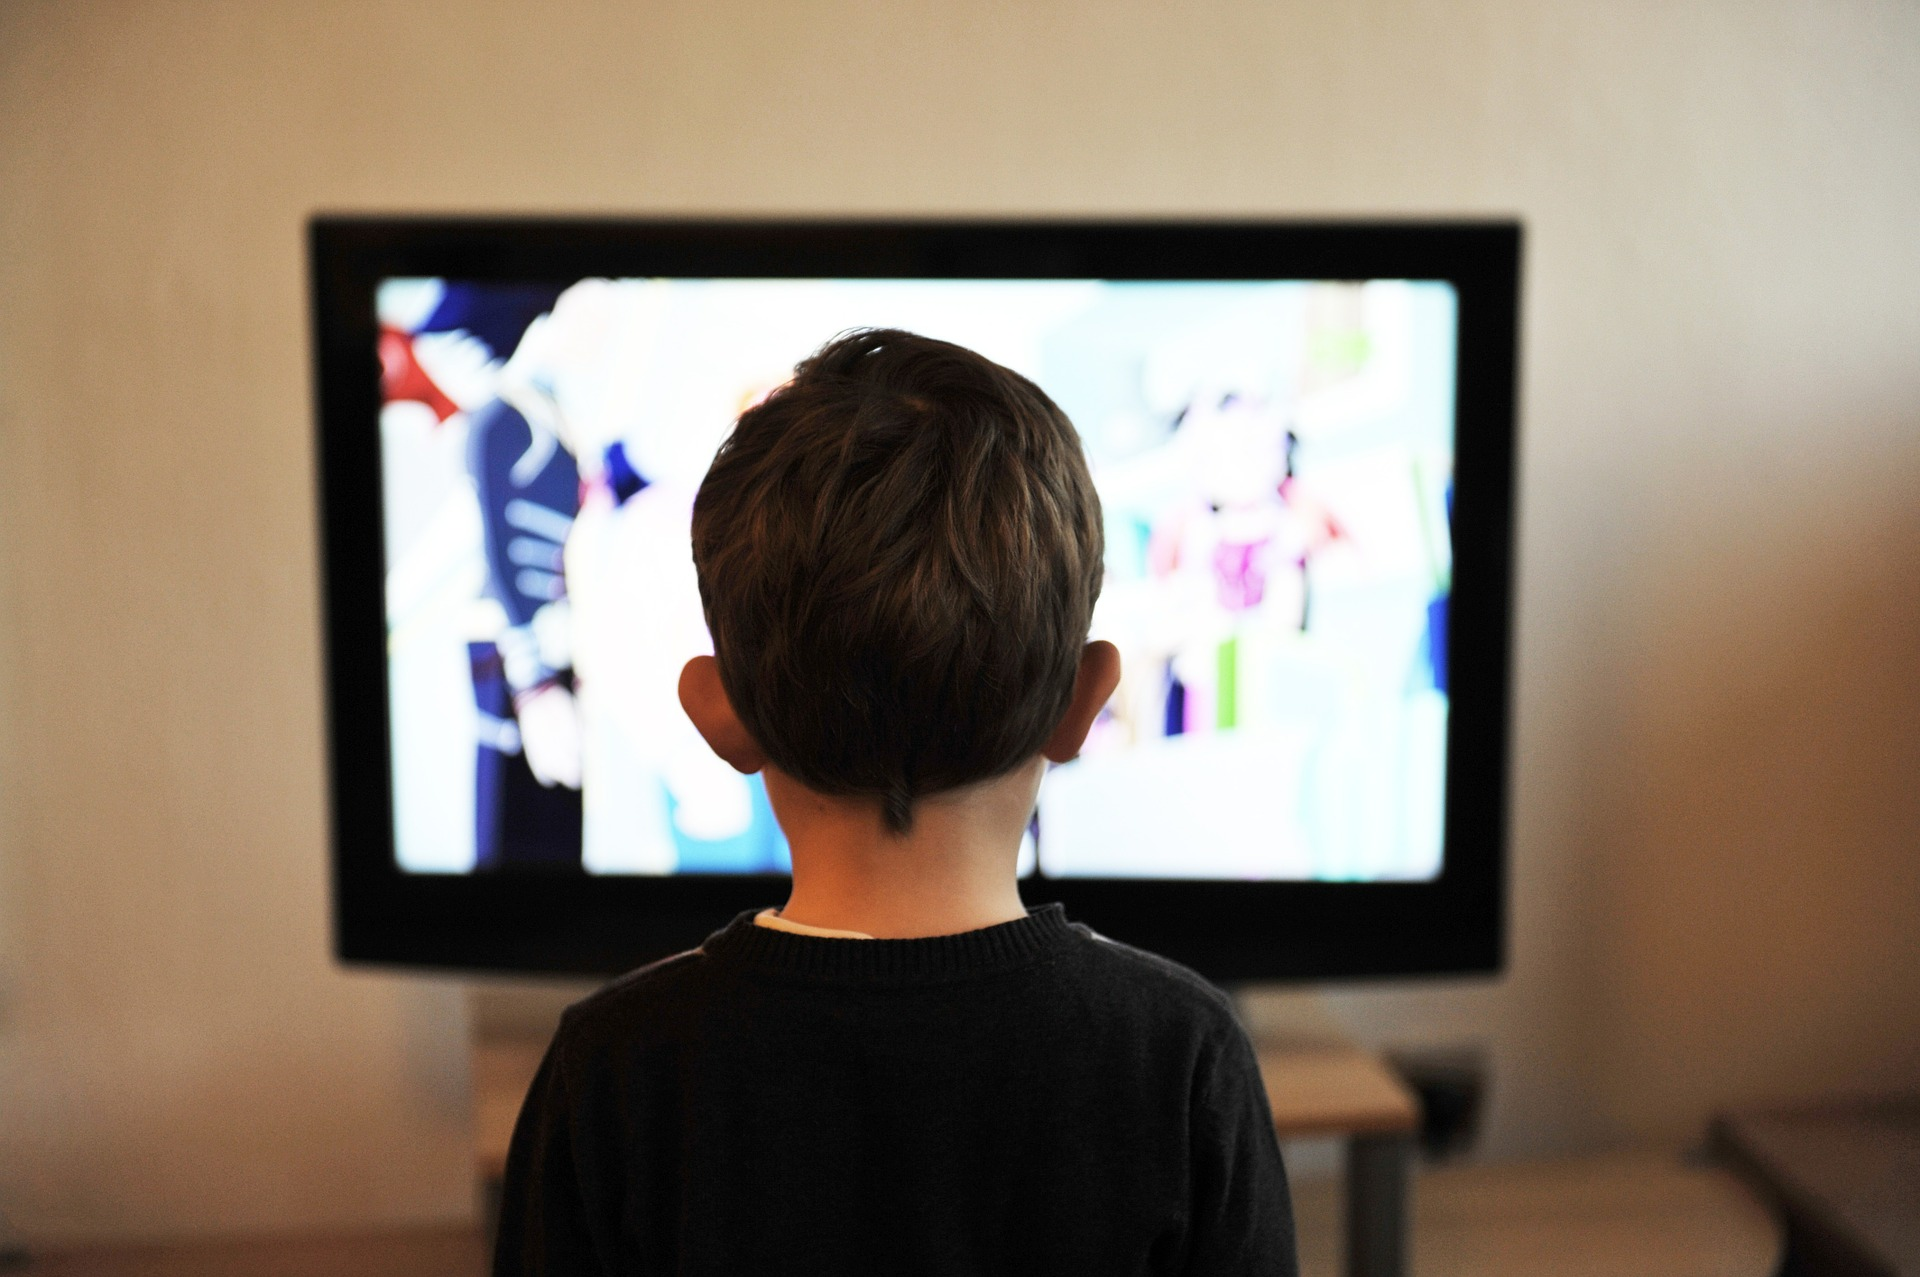 Ten children's TV programmes adults secretly love